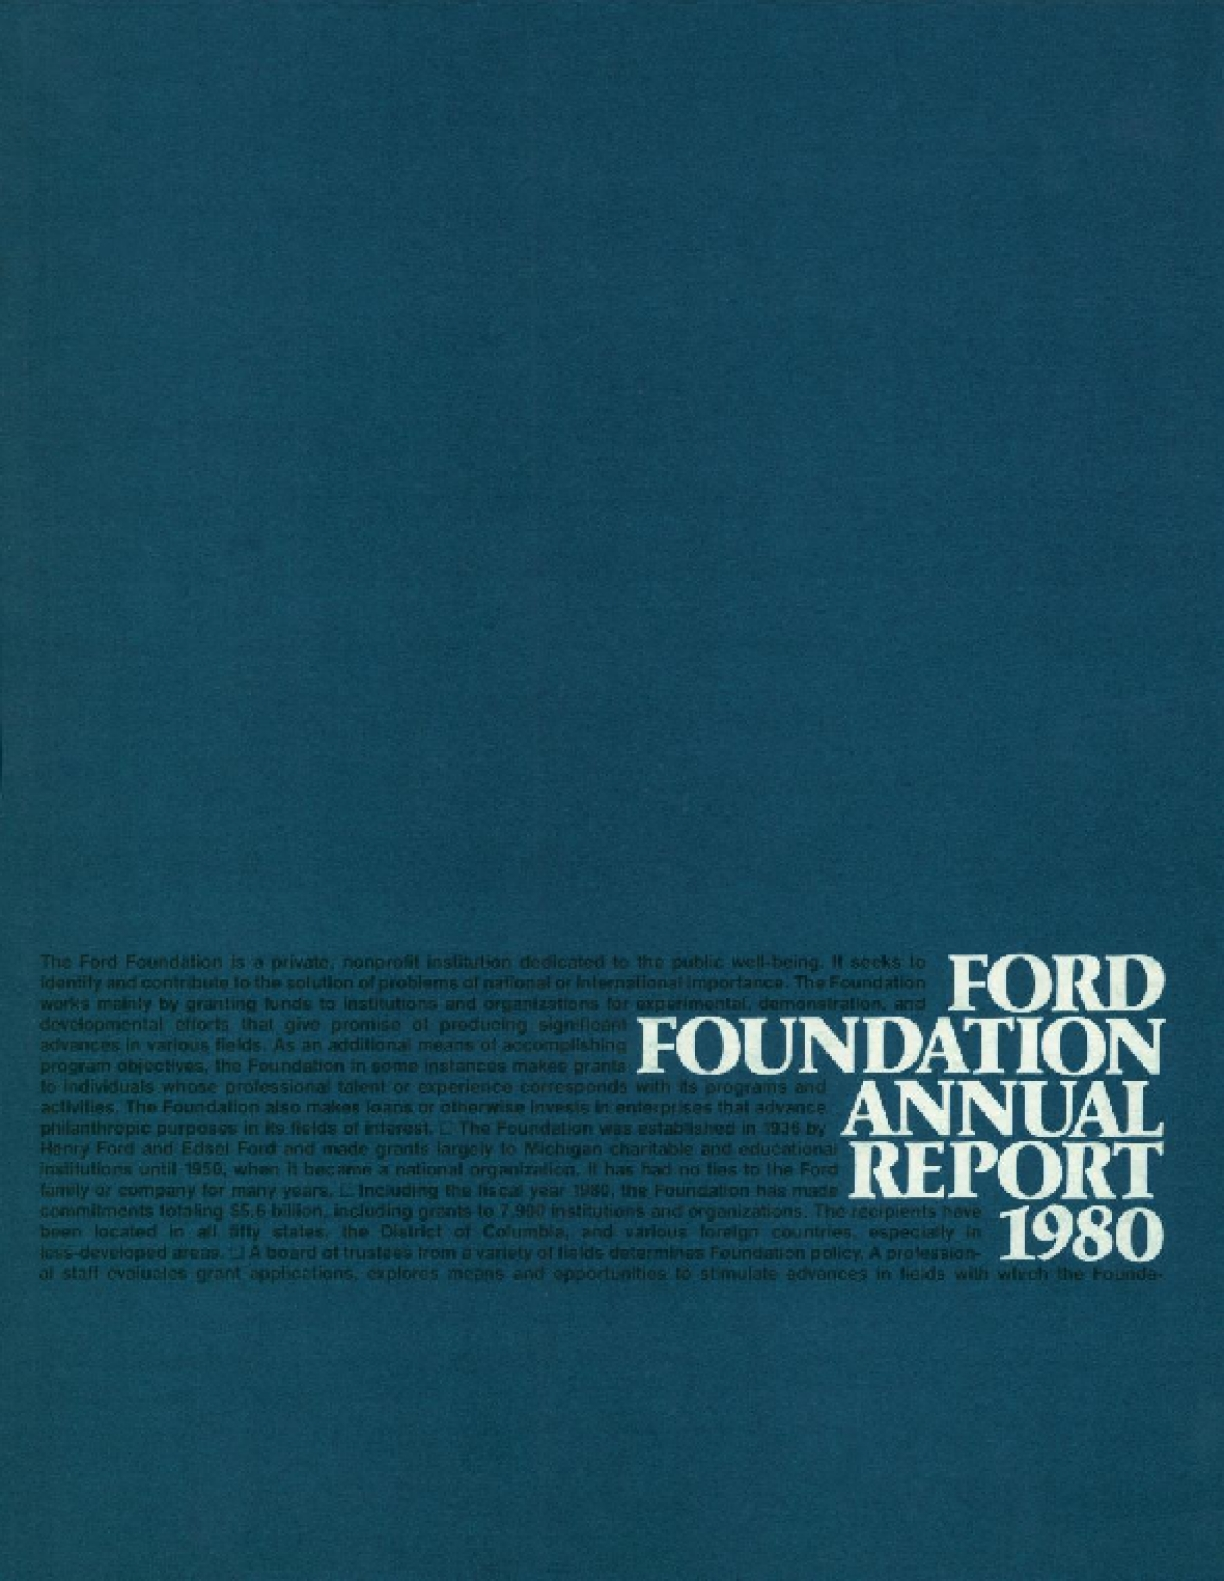 Ford Foundation - 1980 Annual Report